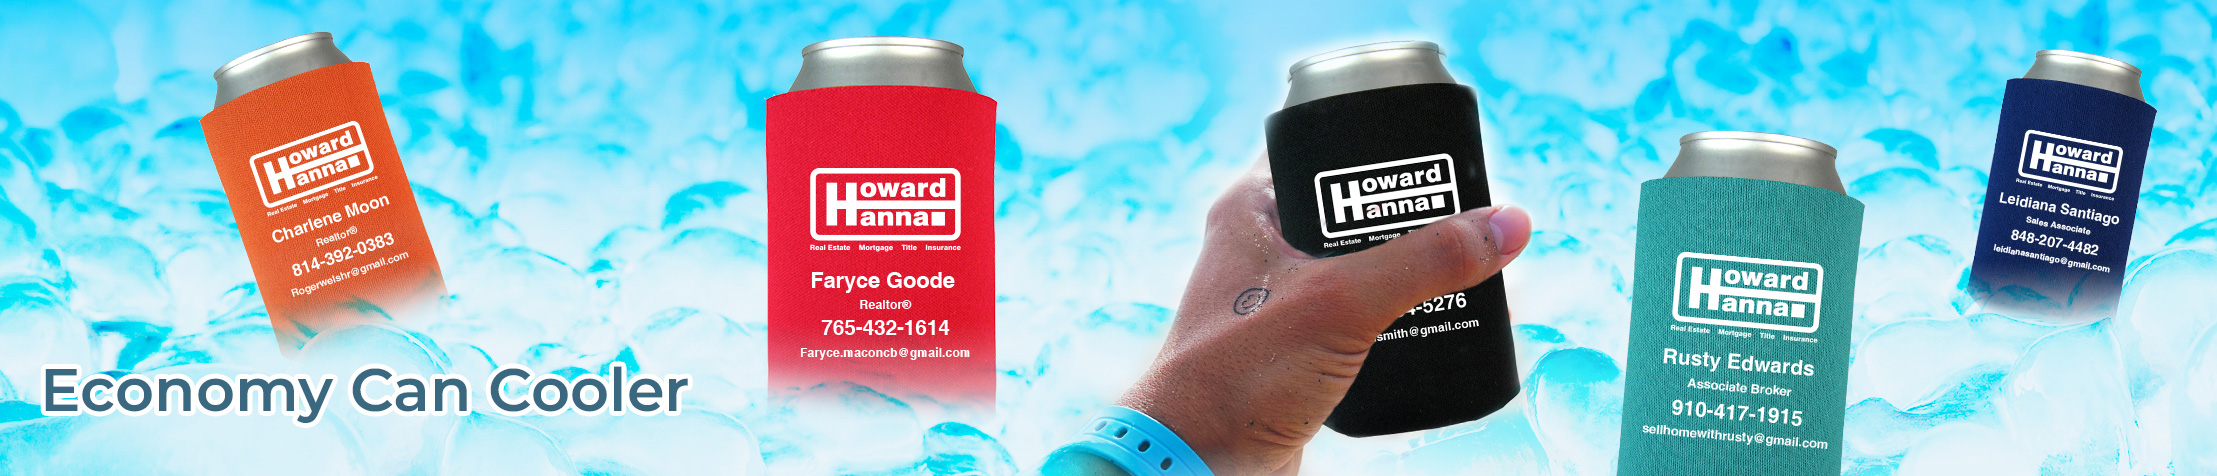 Howard Hanna Real Estate Economy Can Cooler - Howard Hanna  personalized realtor promotional products | BestPrintBuy.com